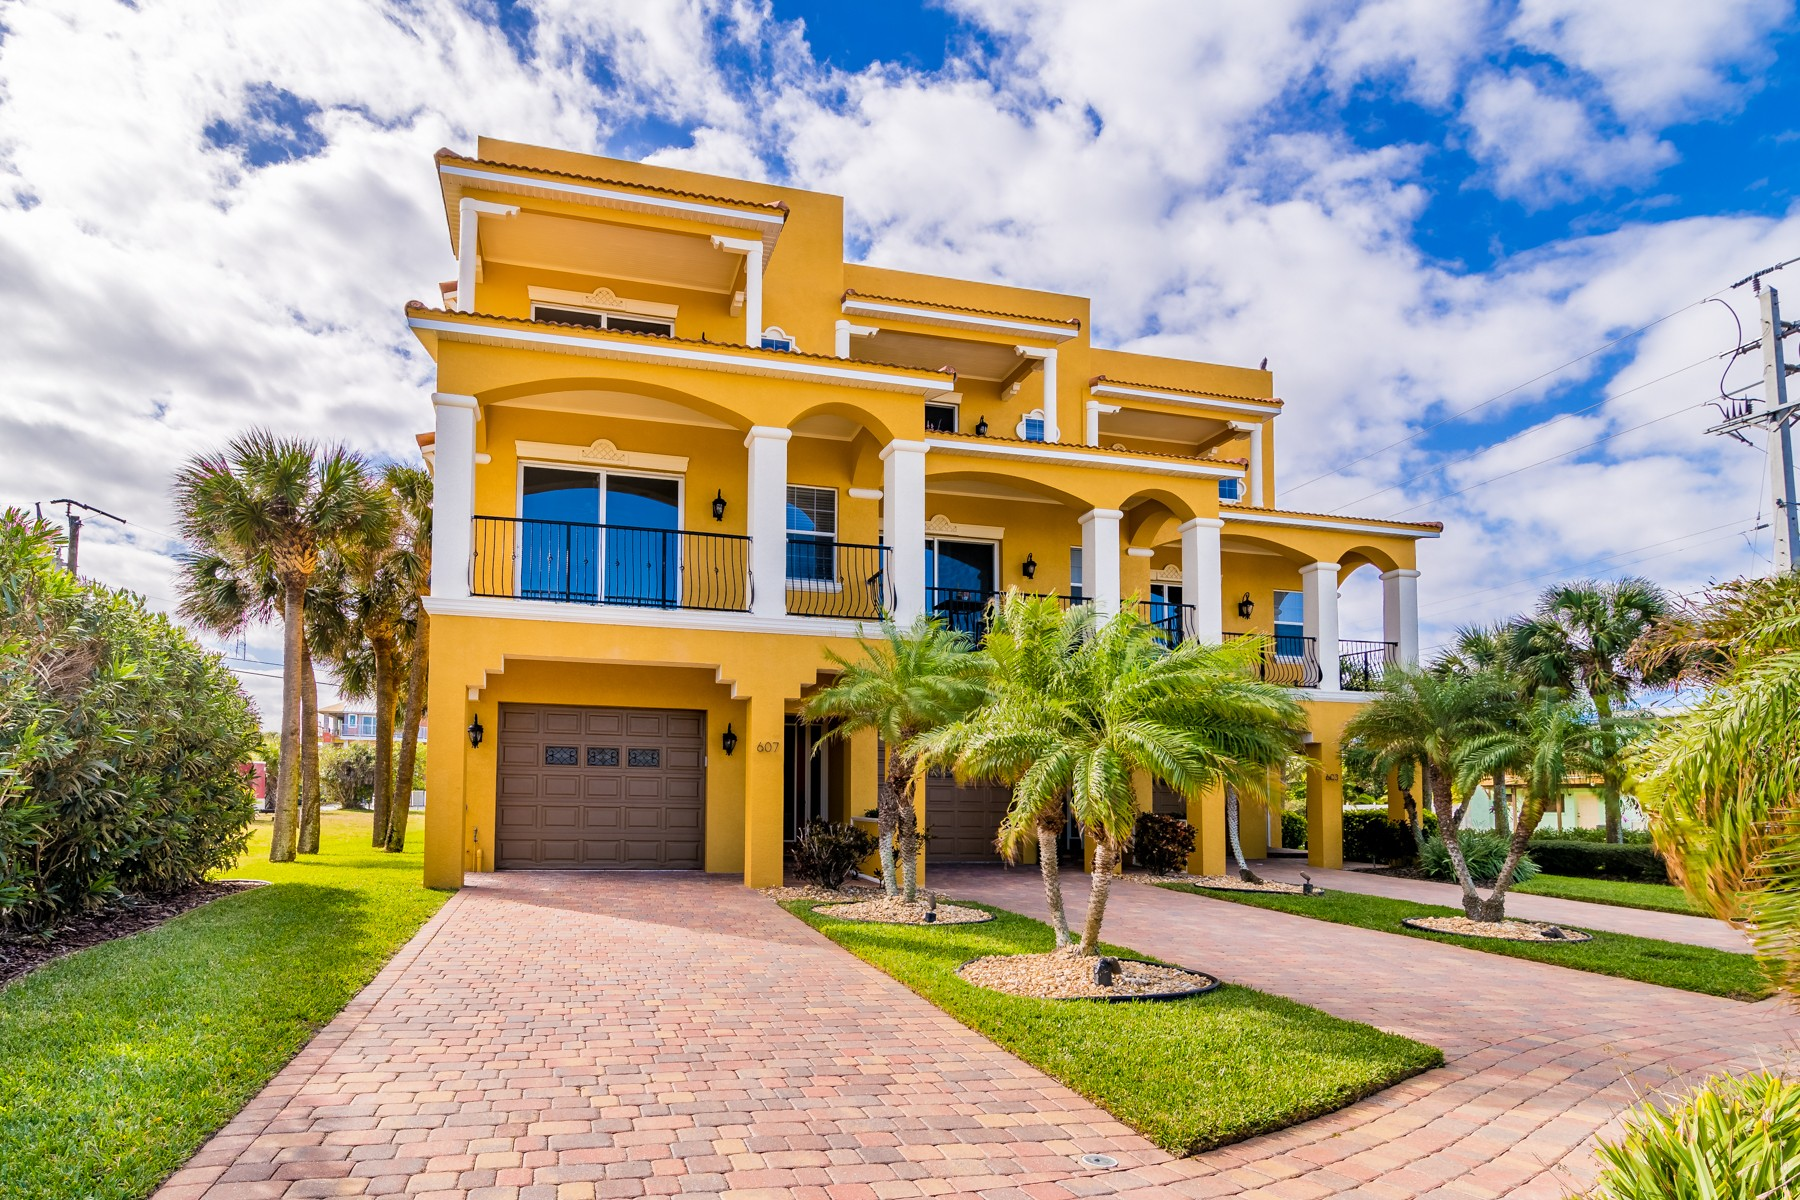 townhouses por un Venta en Beautiful, Luxury Townhouse with a Bright & Open Floor-plan. 607 Washington Avenue Unit 3 Cape Canaveral, Florida 32920 Estados Unidos